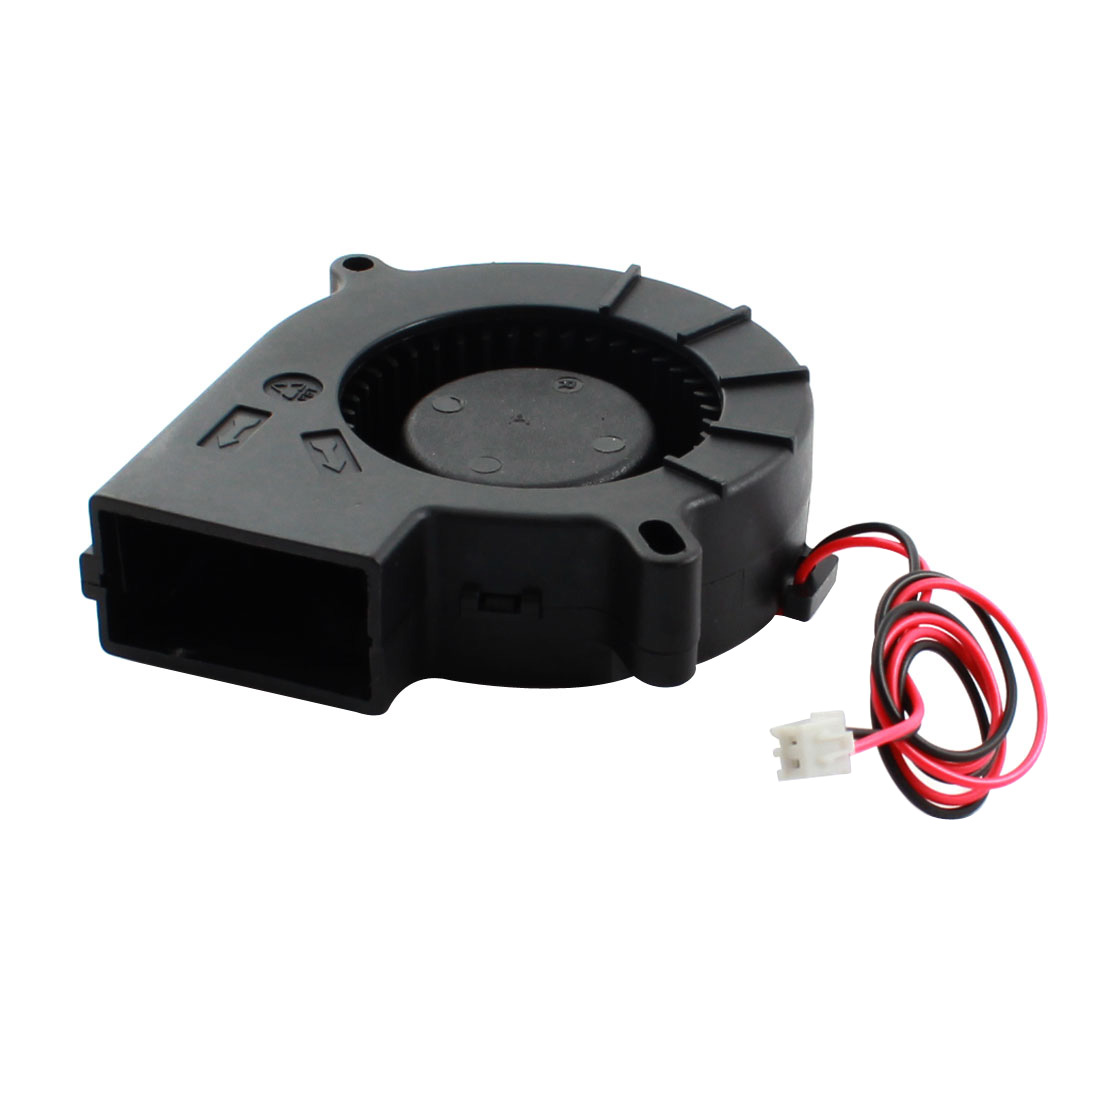 DC 12V JST-XH Plug Connector Black Plastic Brushless Sleeve-bearing Cooling Blower Axial Fan 75mm x 25mm